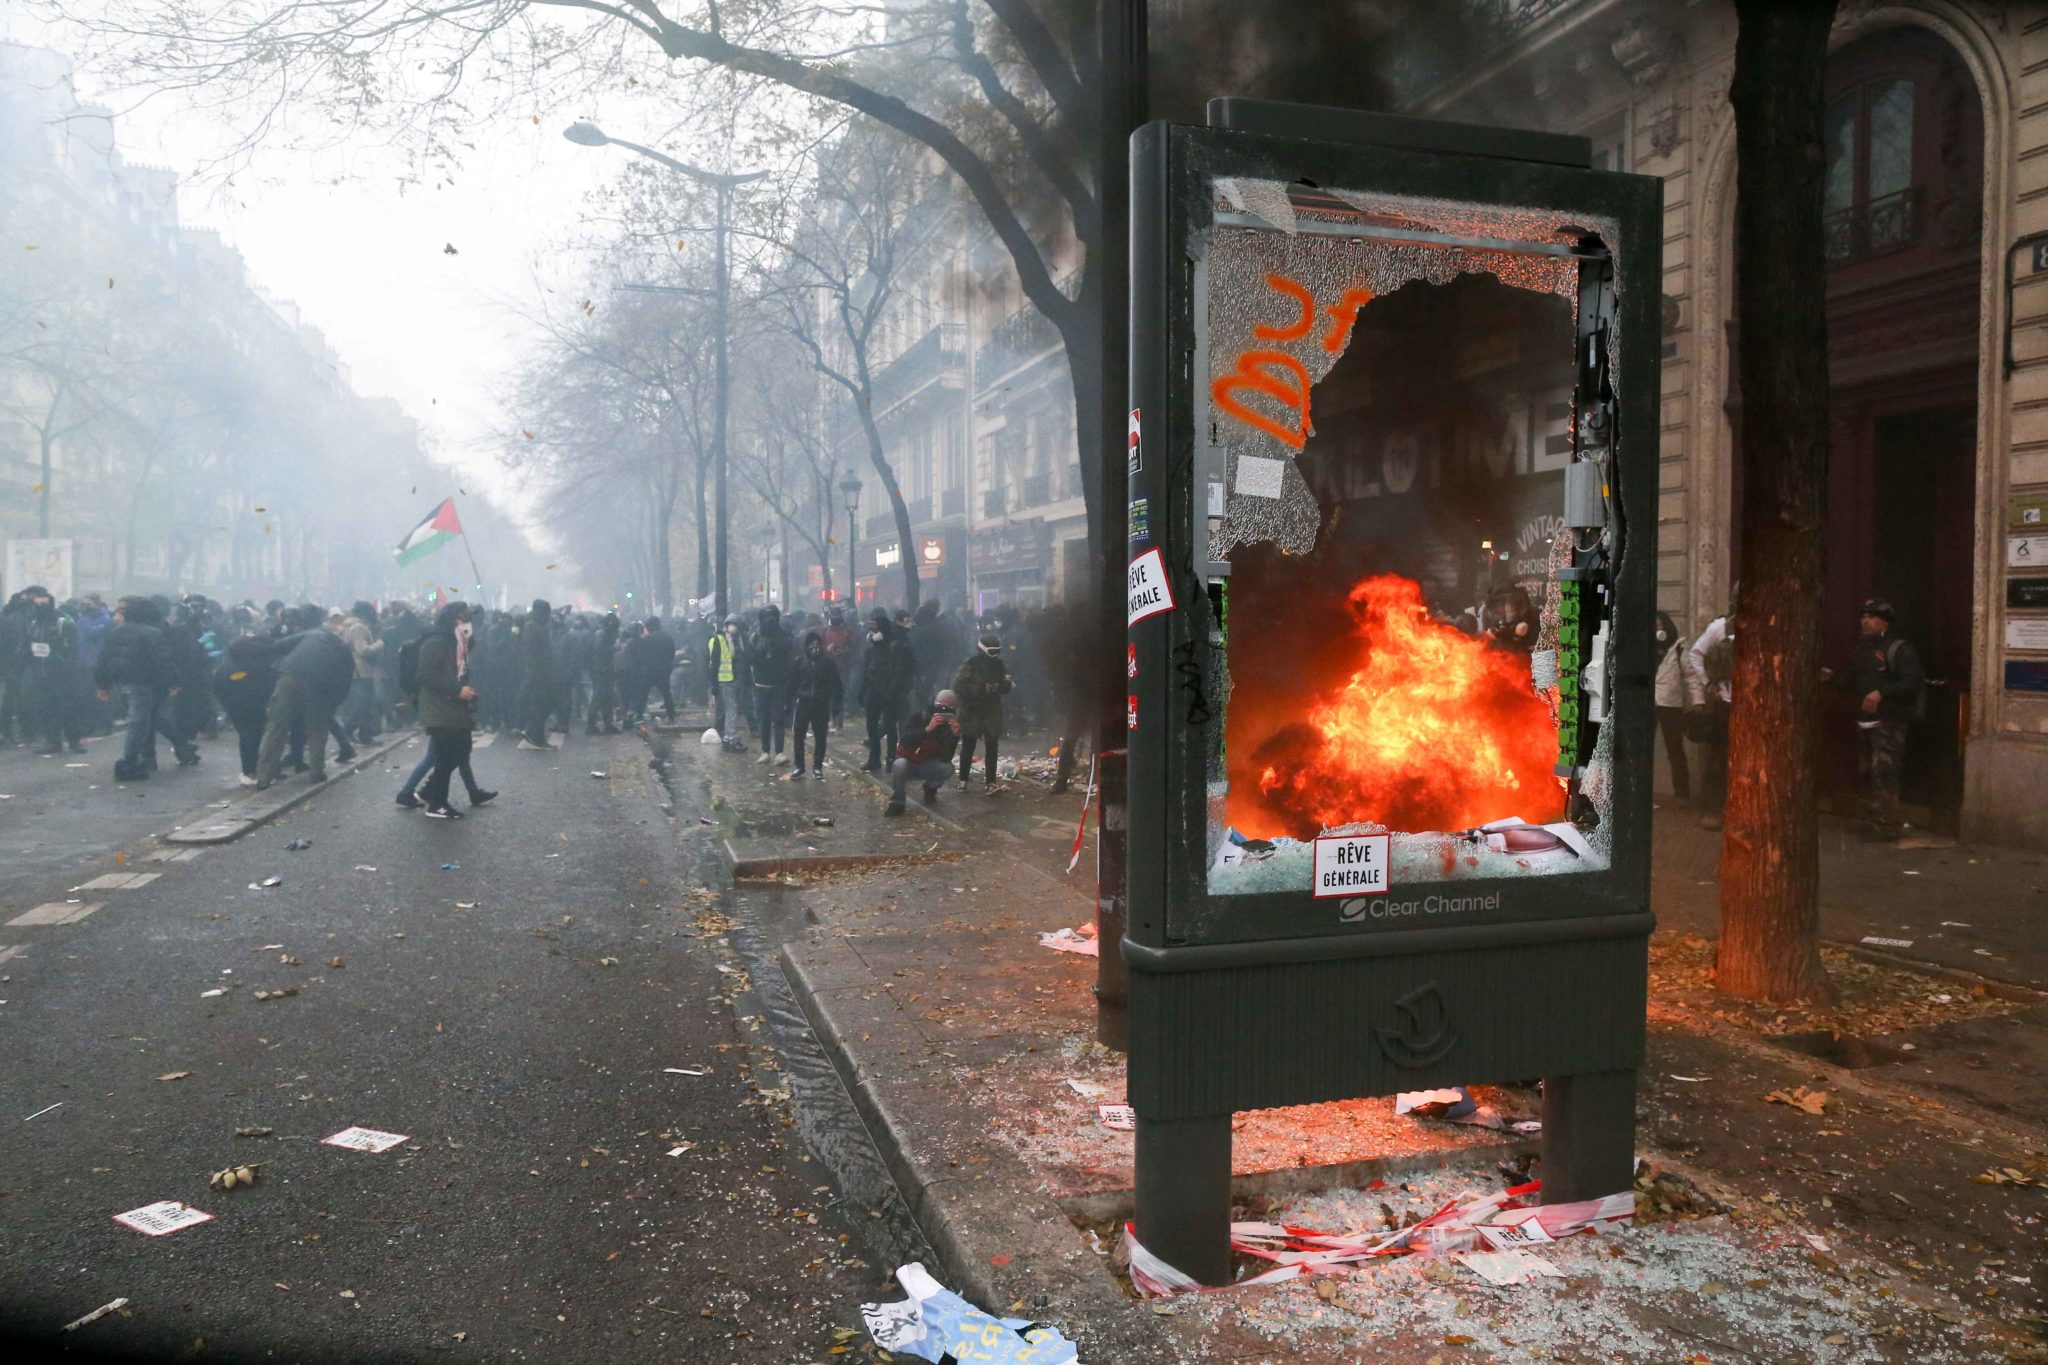 A publicity pane is destroyed during a demontration to protest against the pension overhauls, in Paris, on December 5, 2019 as part of a national general strike. Trains cancelled, schools closed: France scrambled to make contingency plans on for a huge str